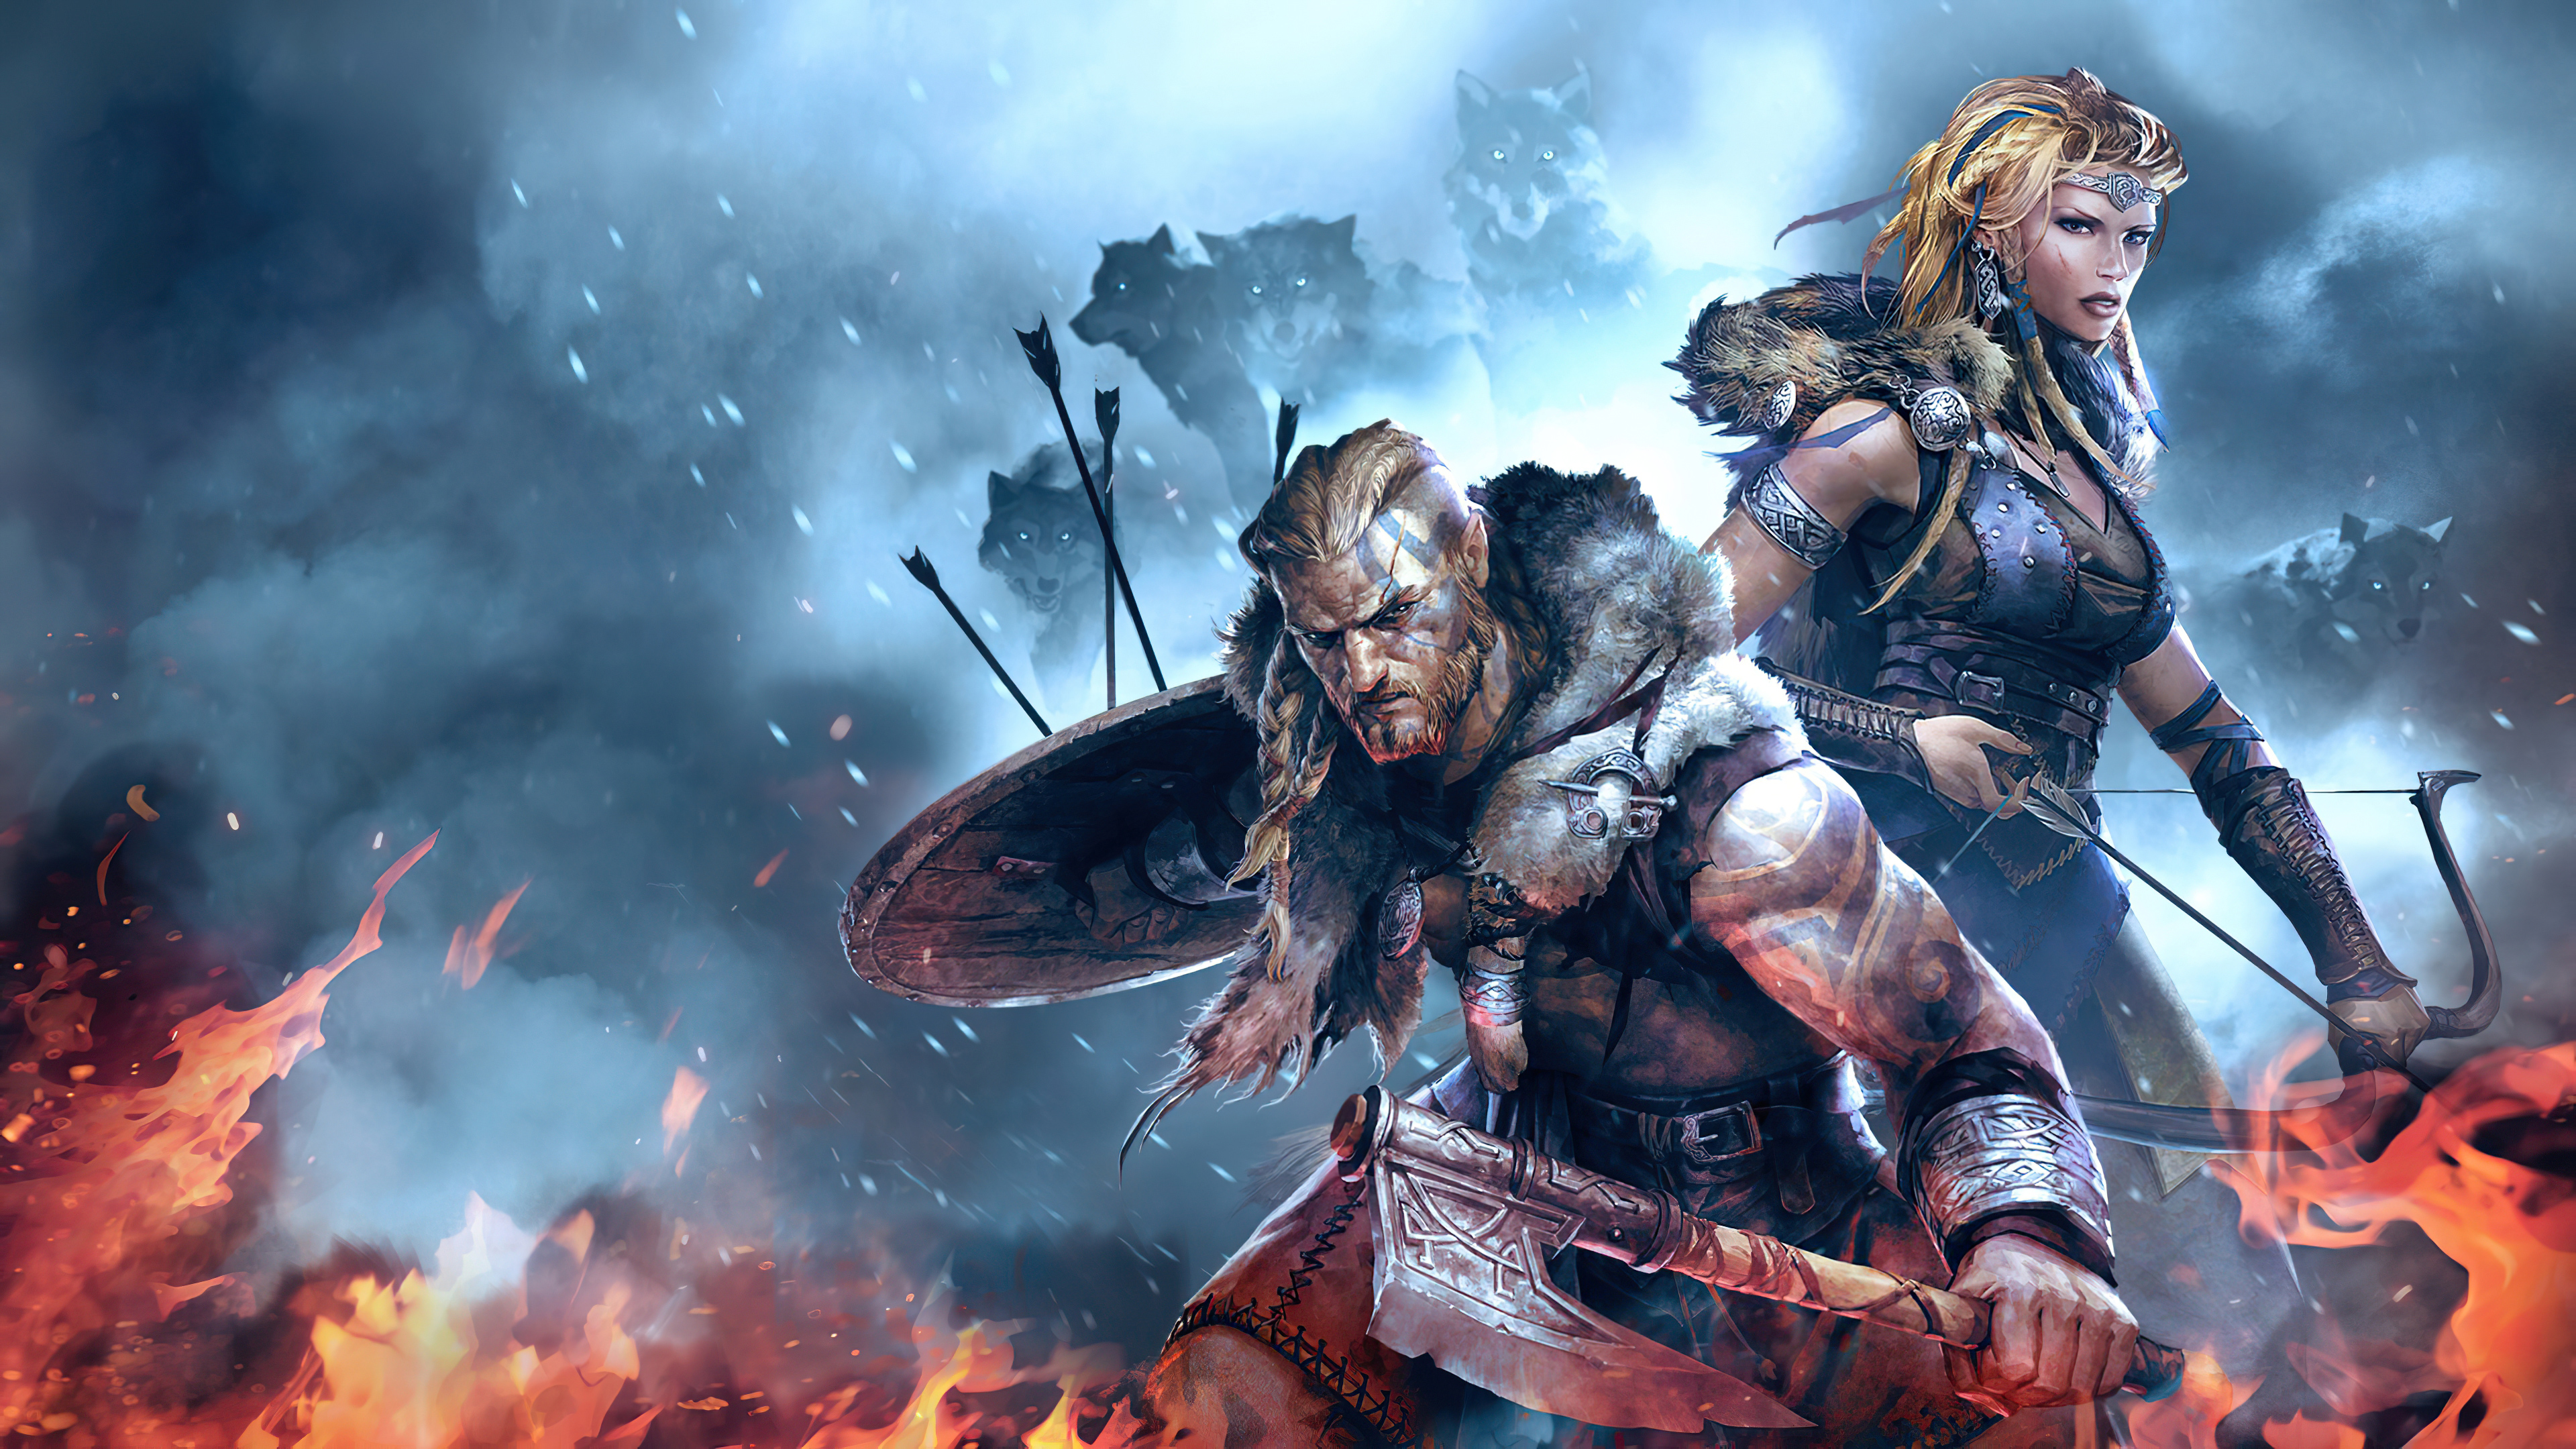 Vikings Wolves Of Midgard 4k Hd Games 4k Wallpapers Images Backgrounds Photos And Pictures